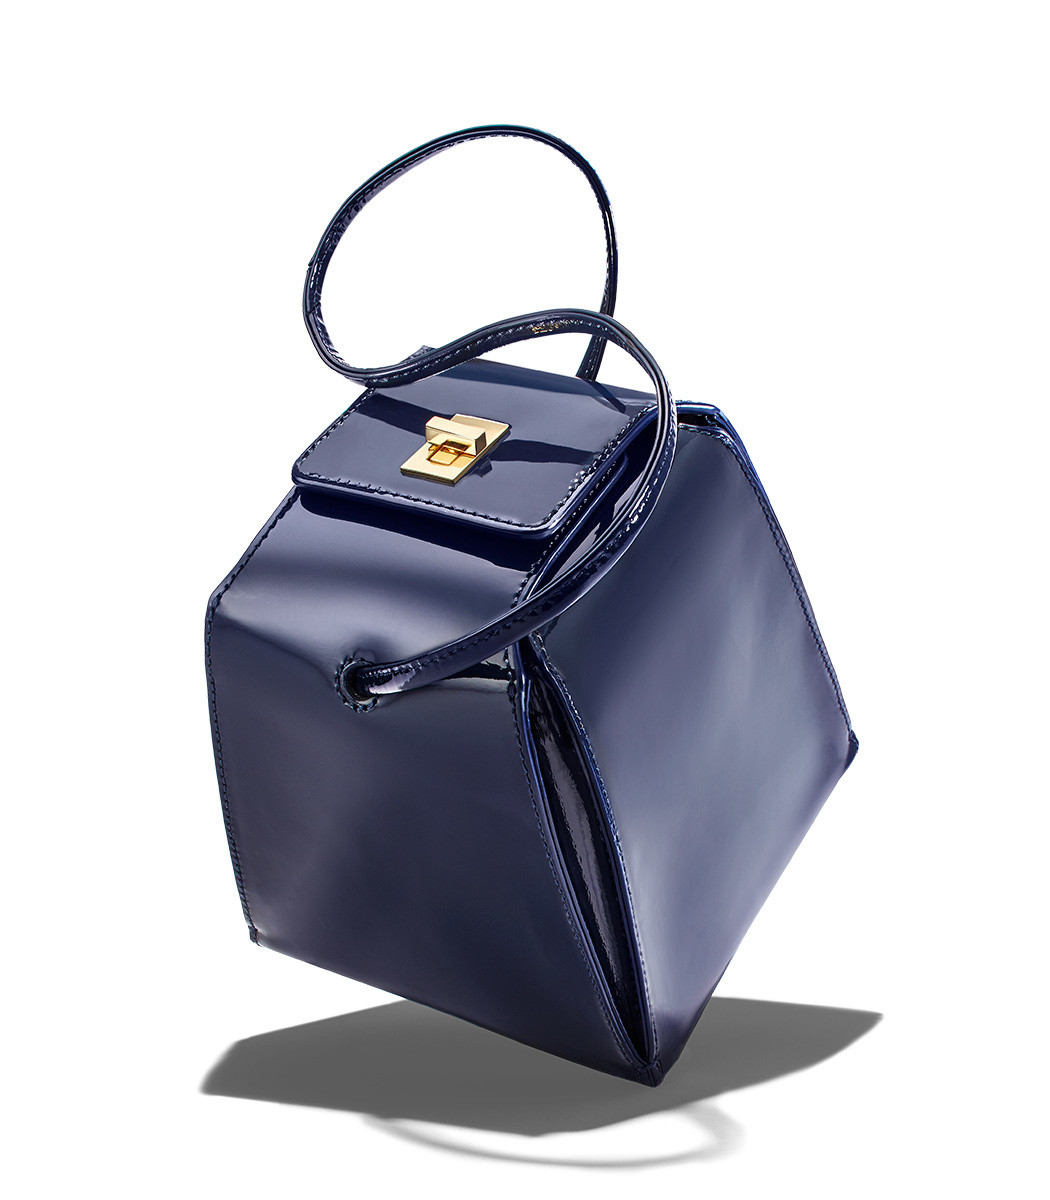 6c1b78468808 Home   Neely   Chloe   Pyramid Bag in Navy Patent. prev